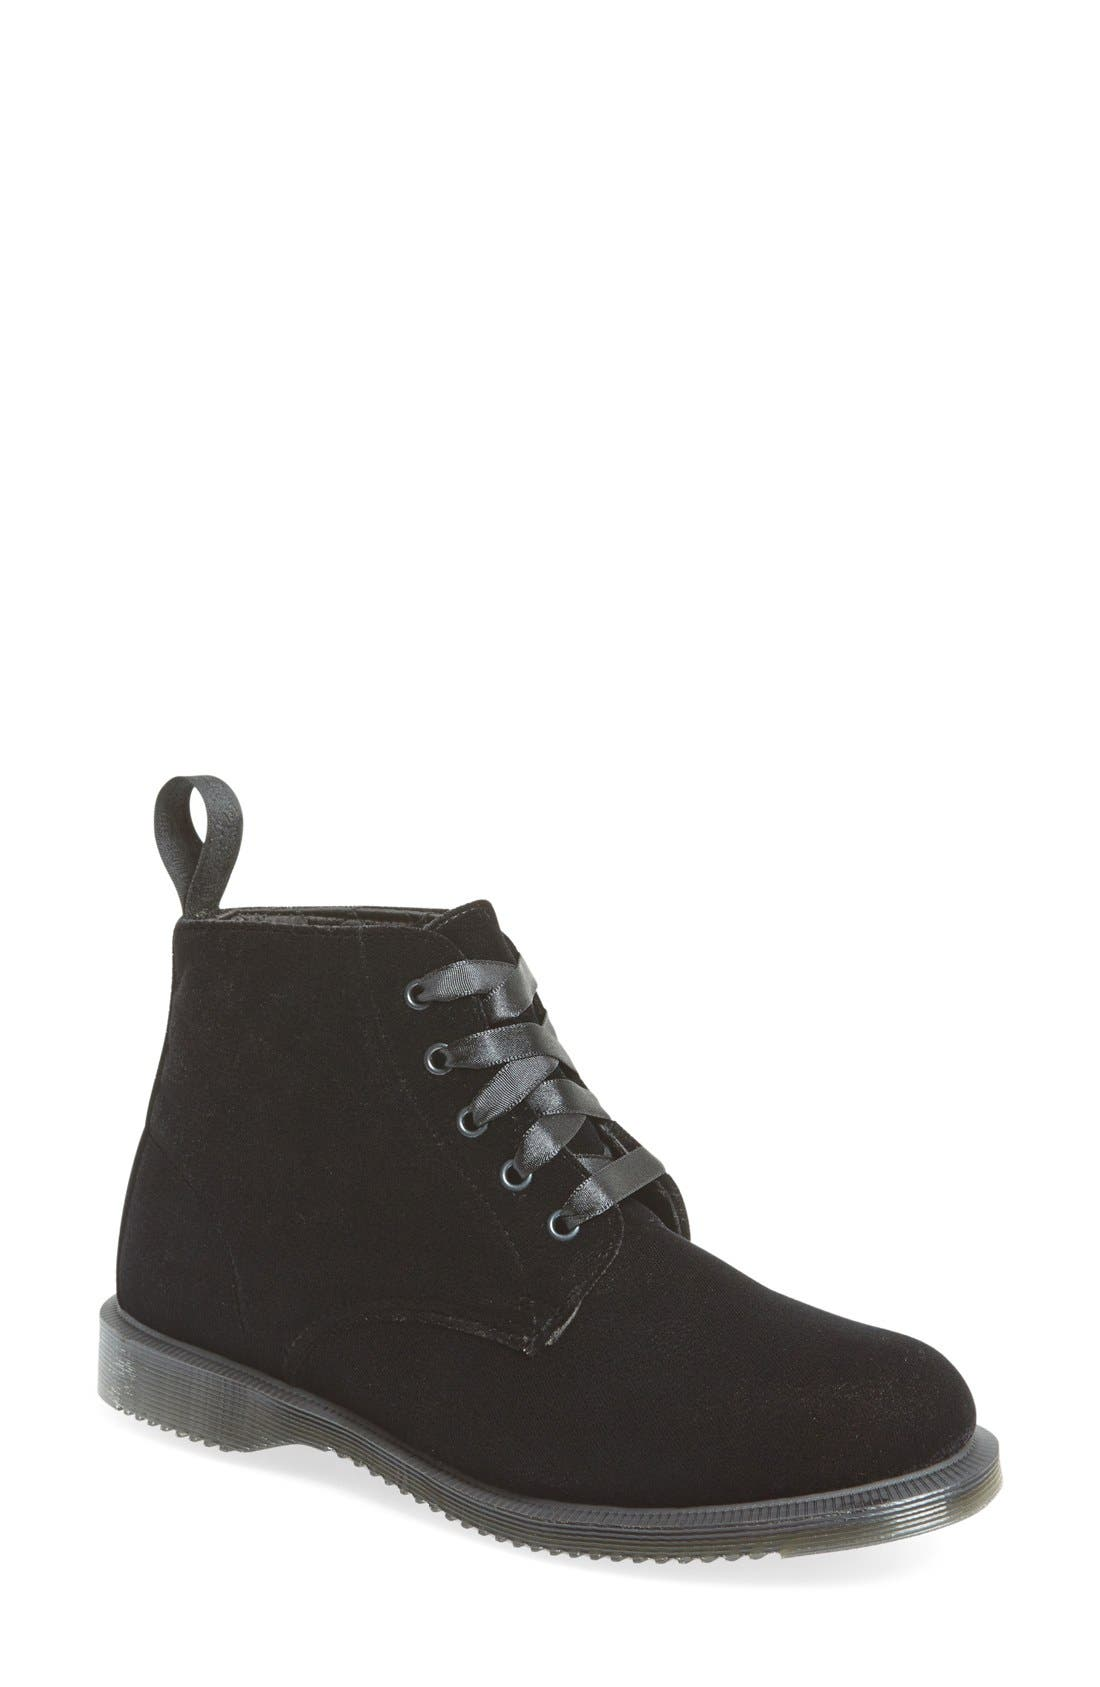 Alternate Image 1 Selected - Dr. Martens 'Lana' Bootie (Women)